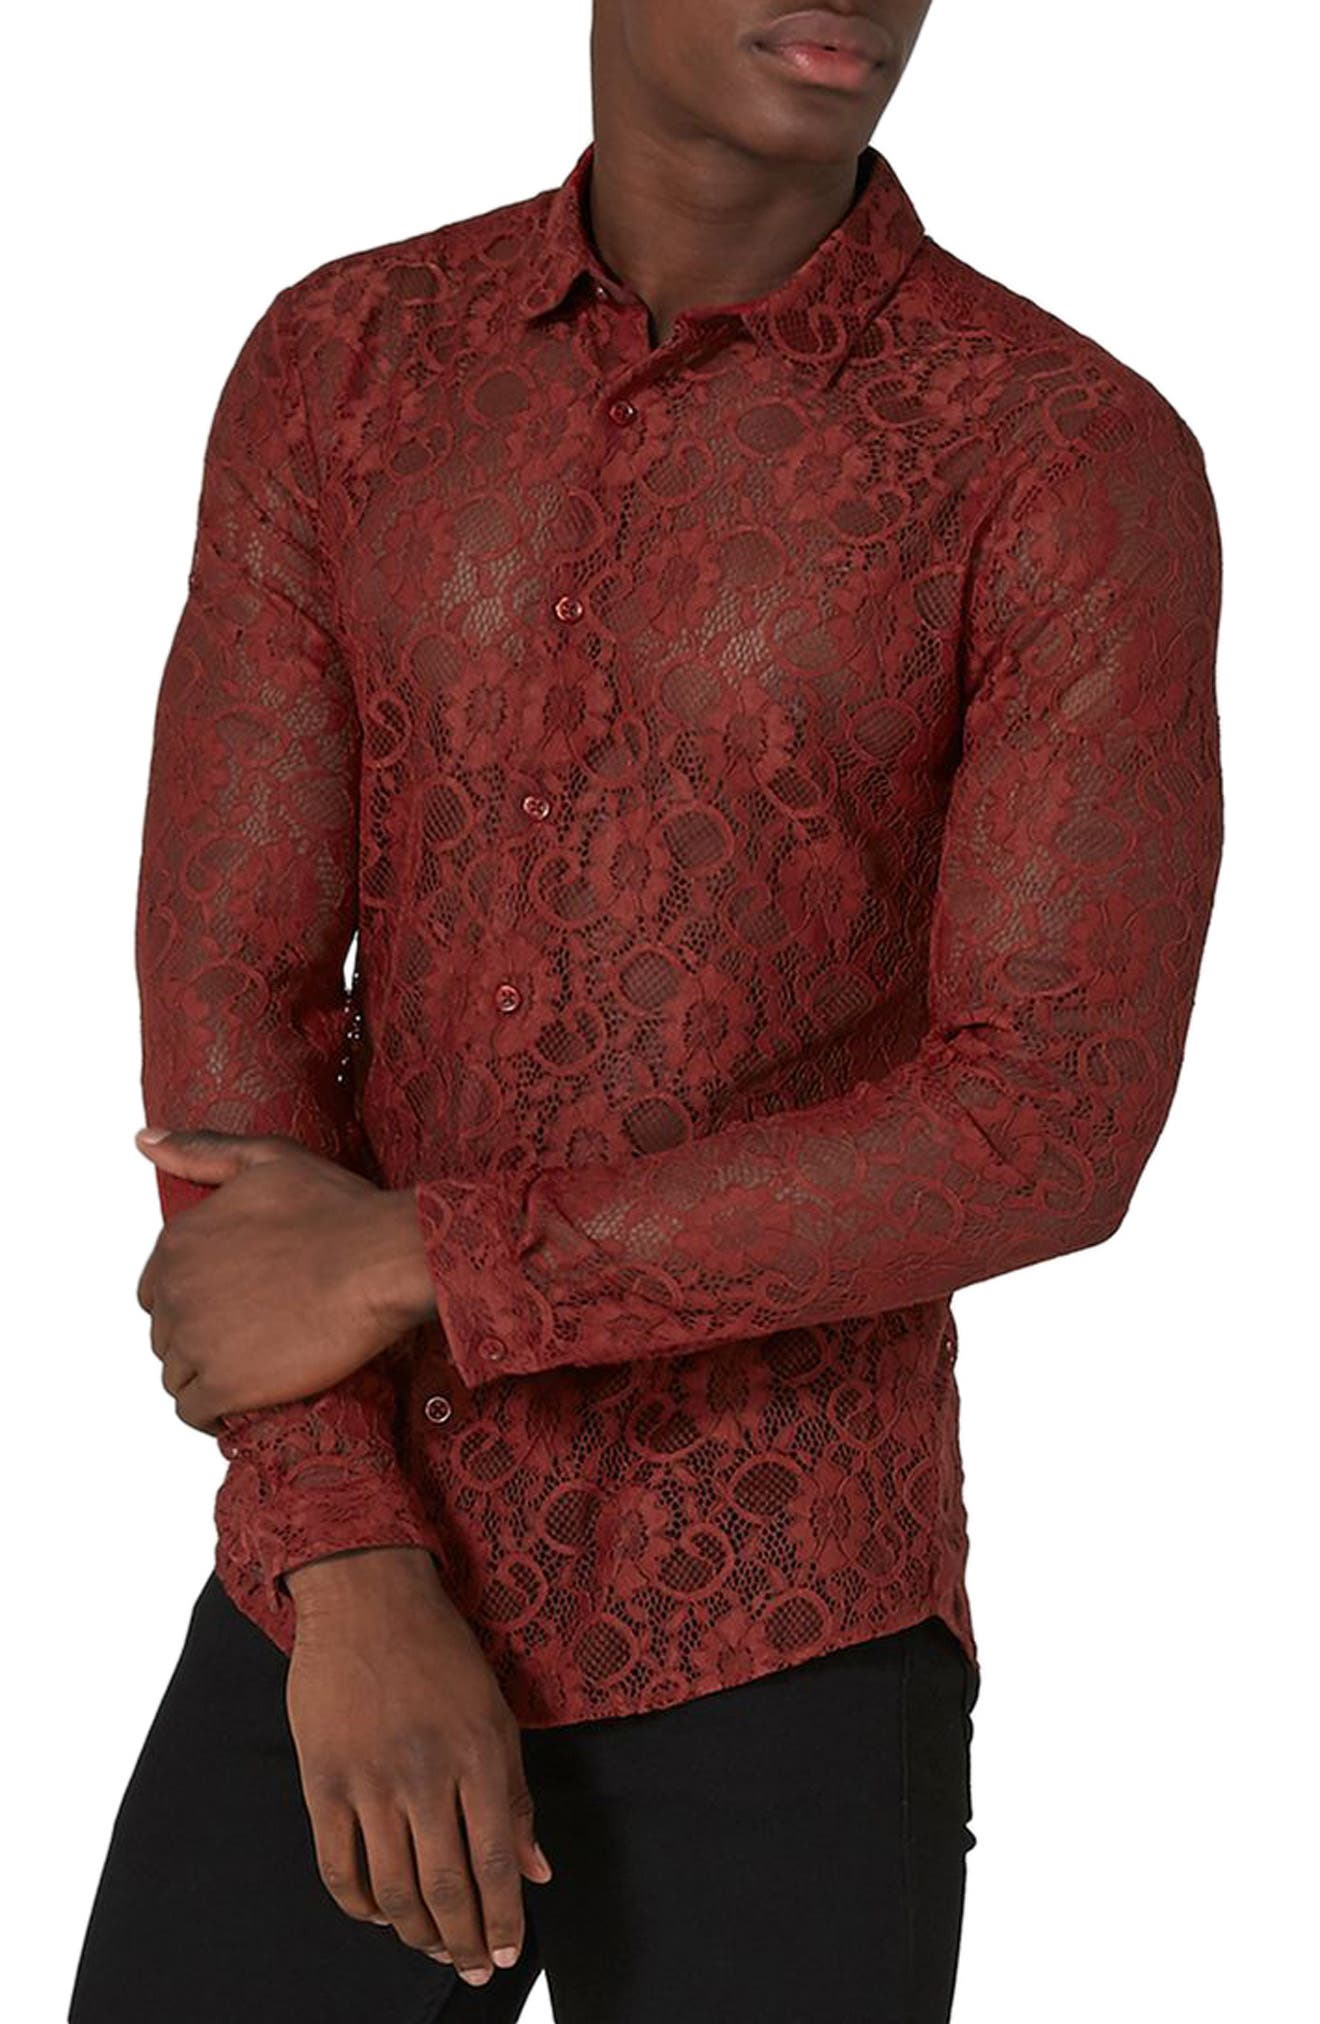 Topman Muscle Fit Sheer Lace Shirt